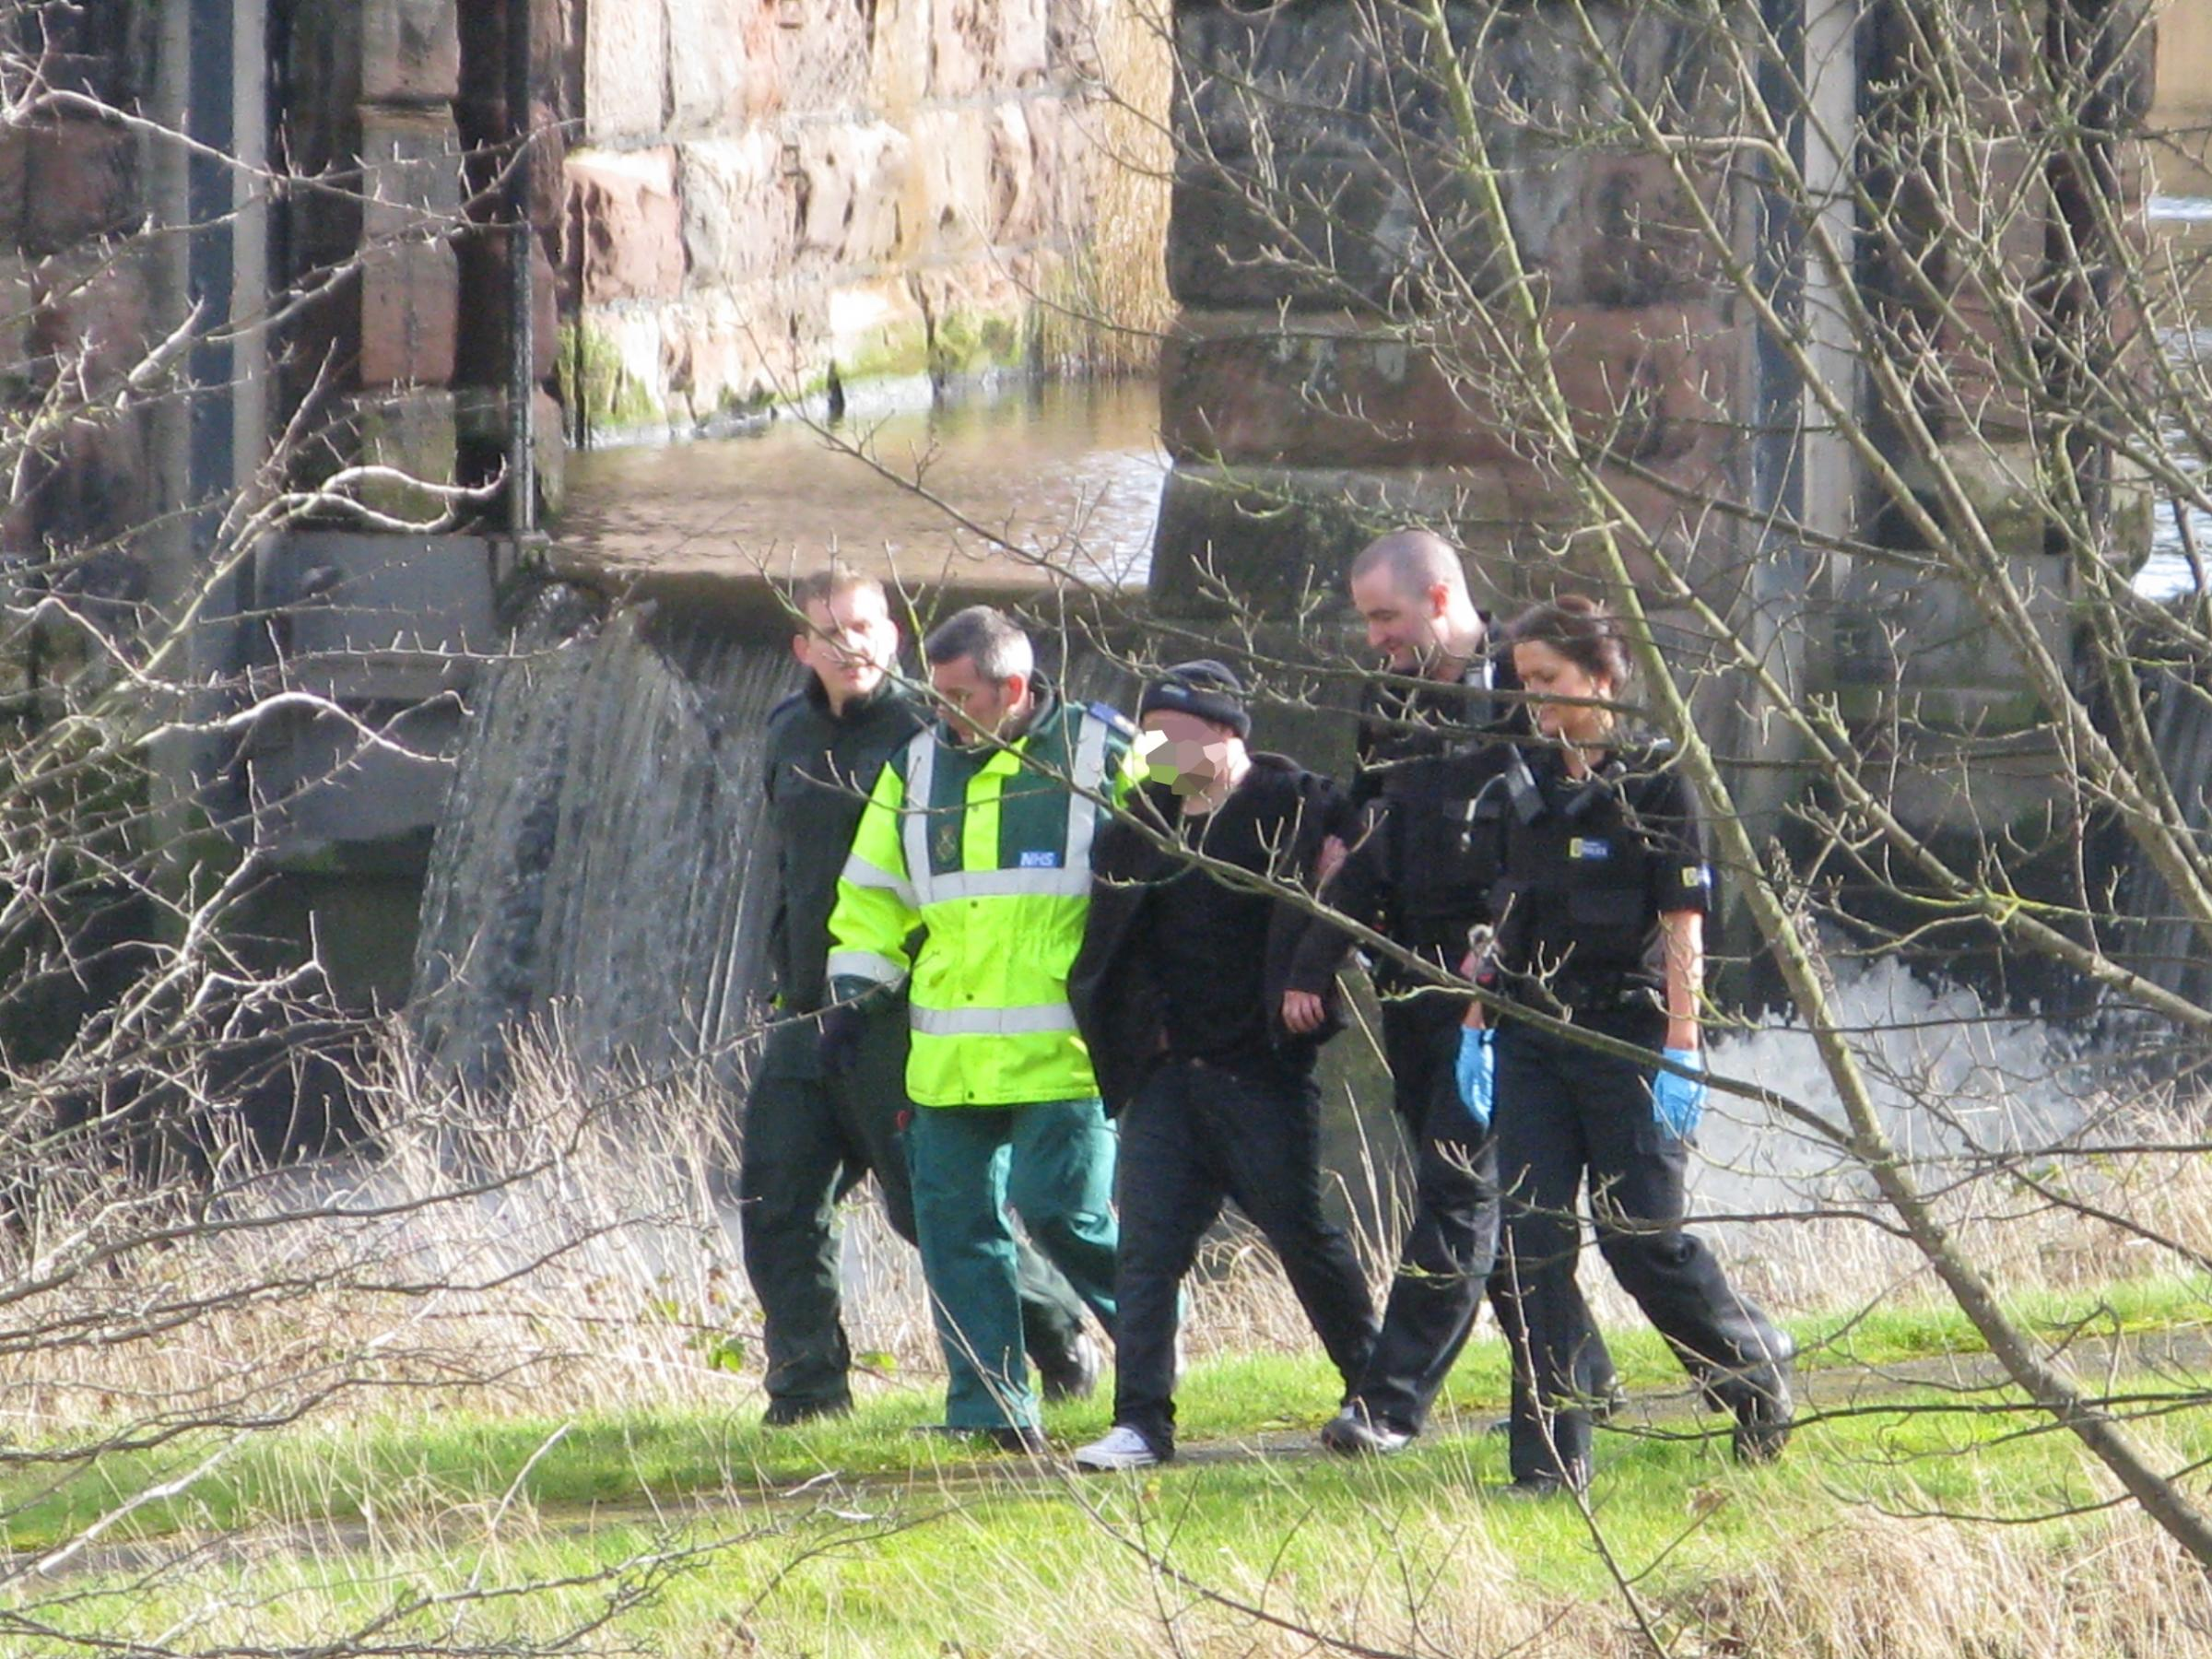 VIDEO: Man pulled from River Weaver